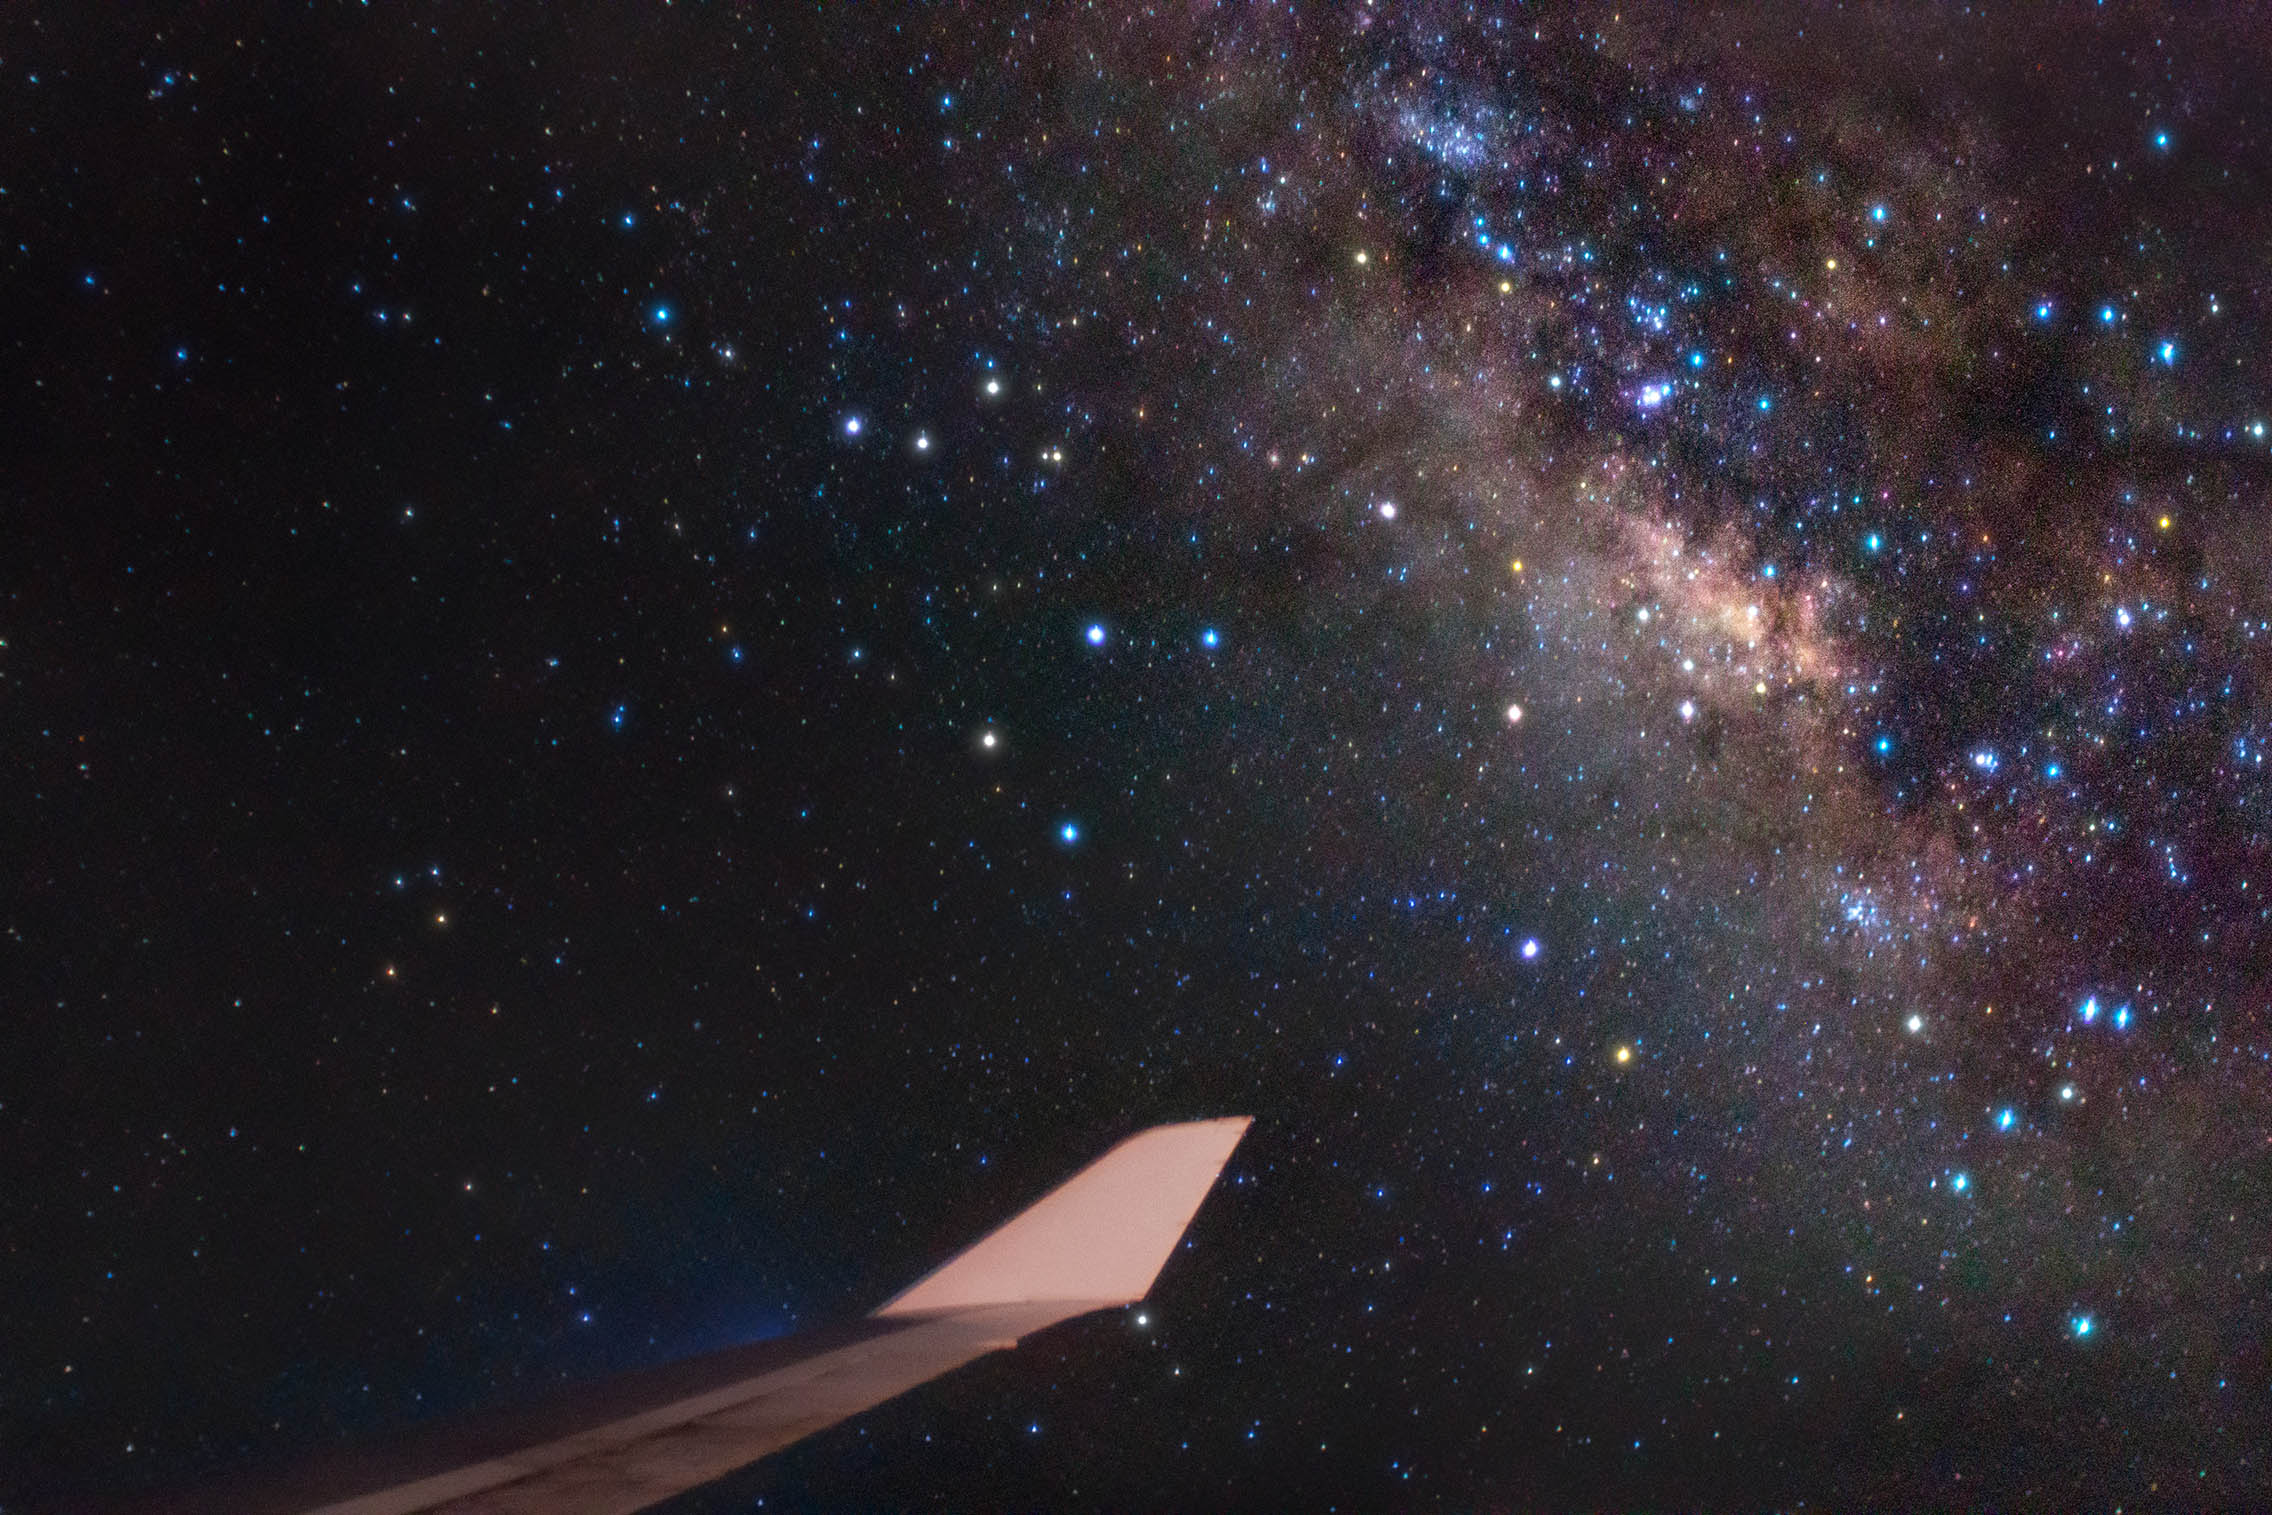 An Incredible Photo Of The Milky Way From A Window Seat On A